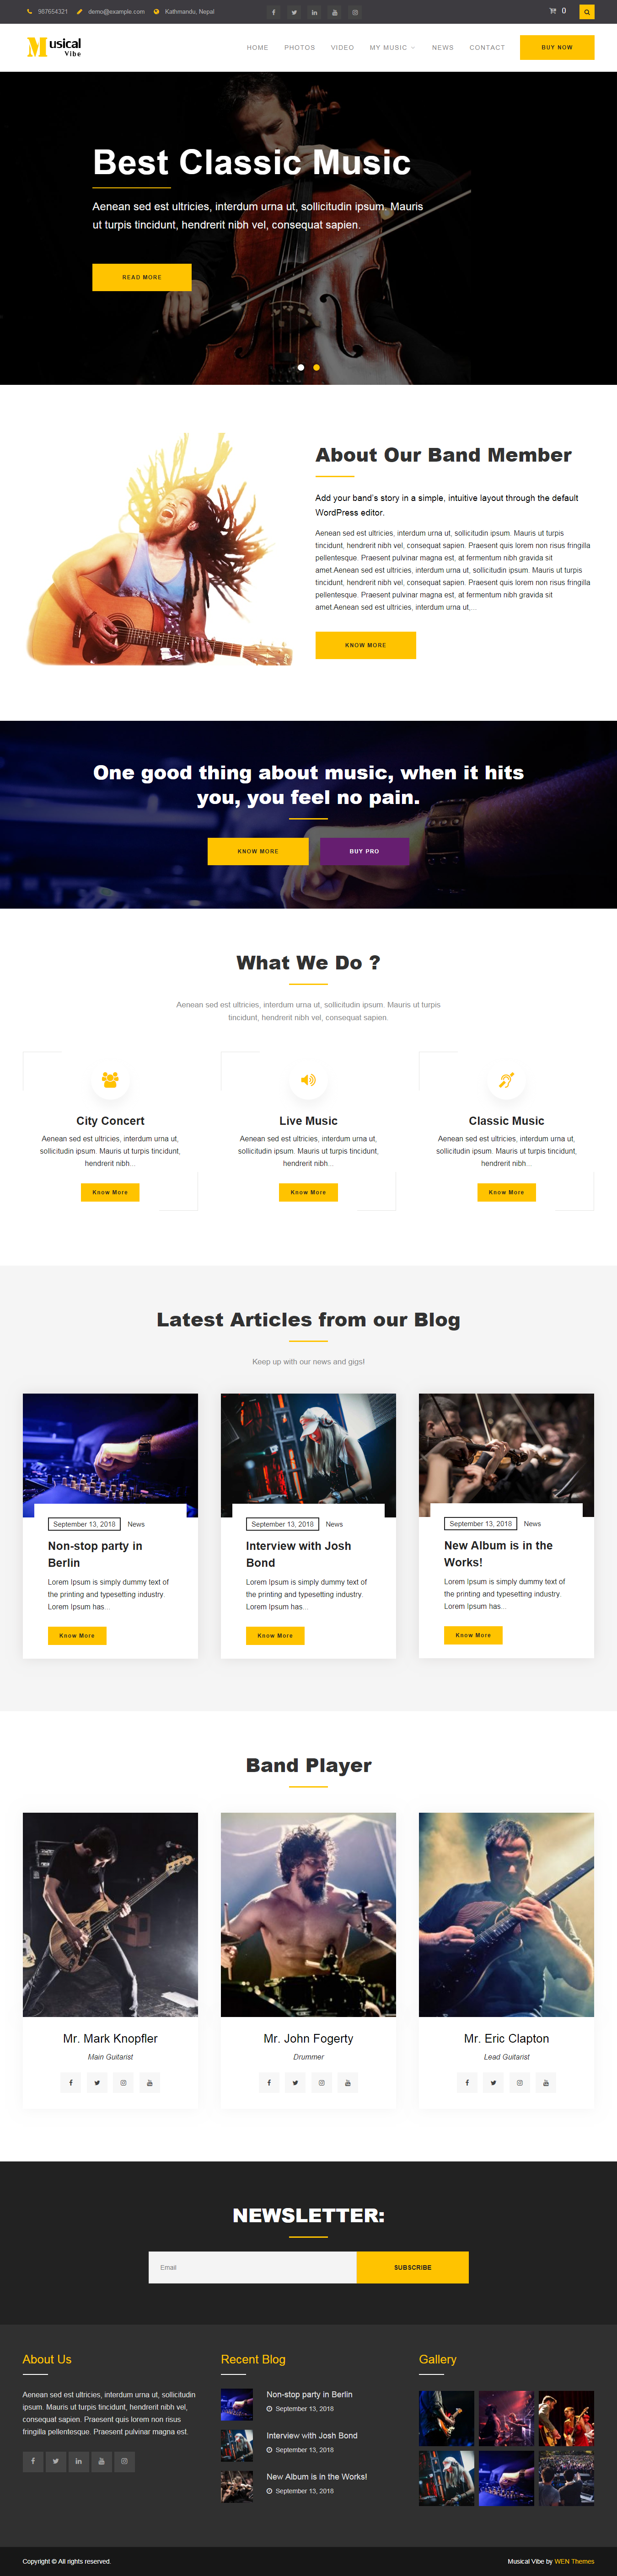 10+ Best Free Video and Music WordPress Themes - AccessPress Themes